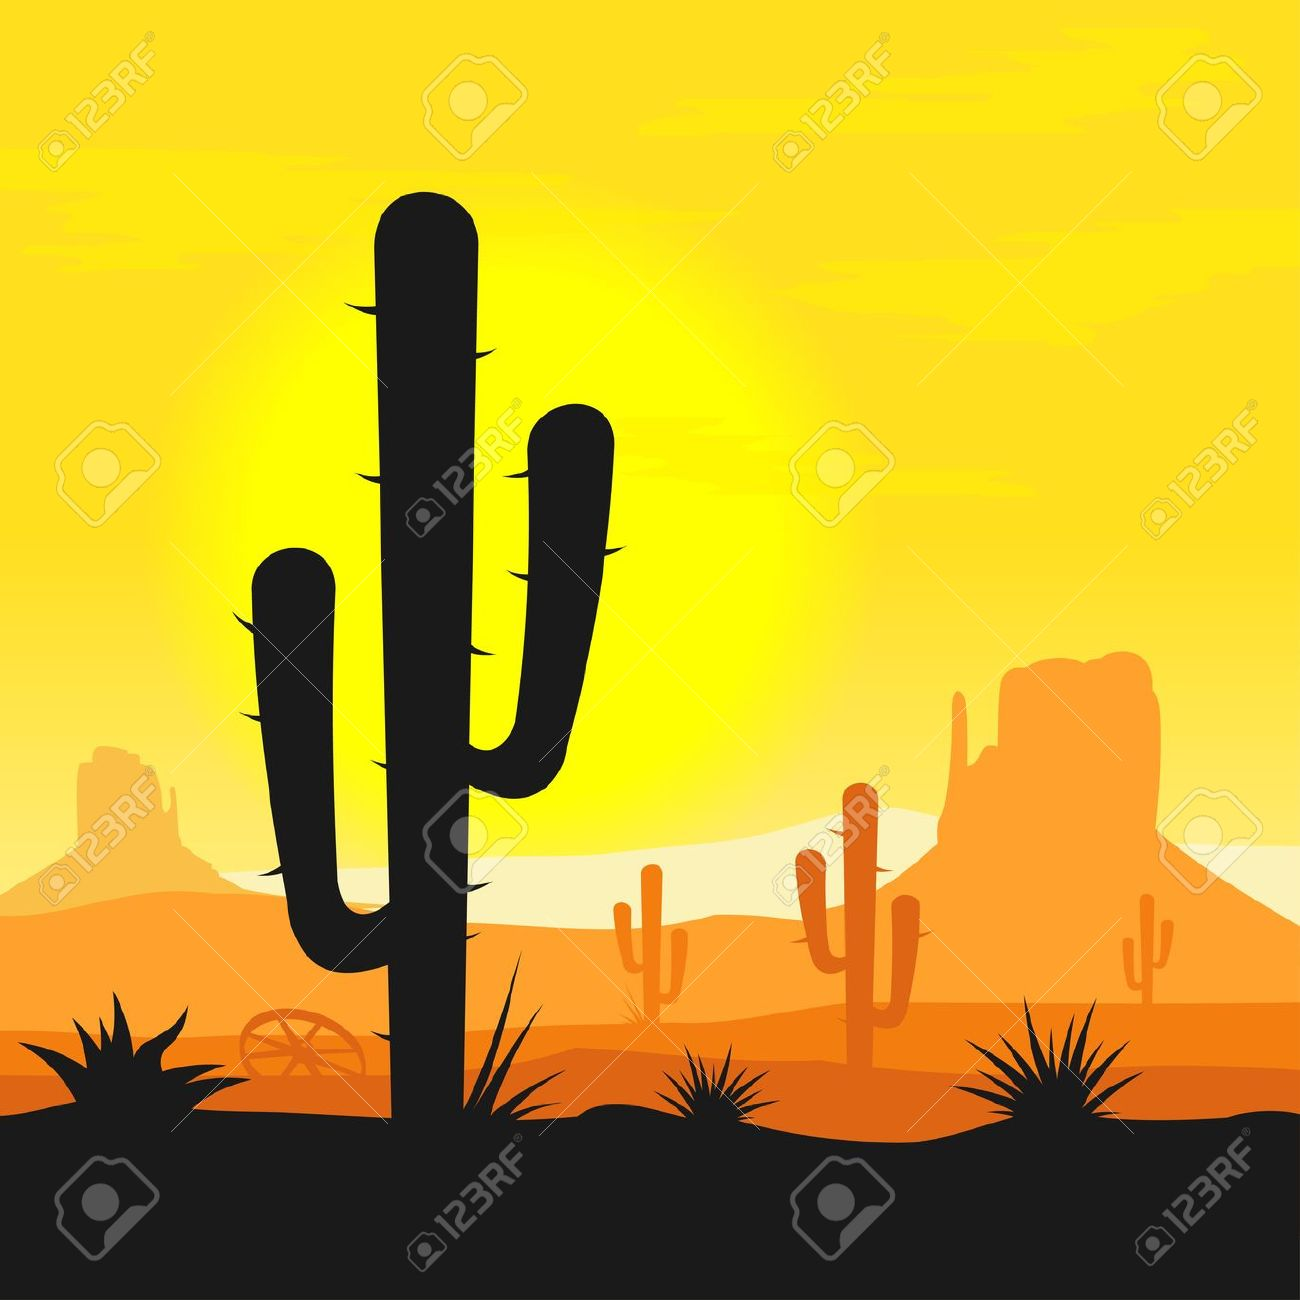 Arizona Desert Clip Art-Arizona Desert Clip Art-9